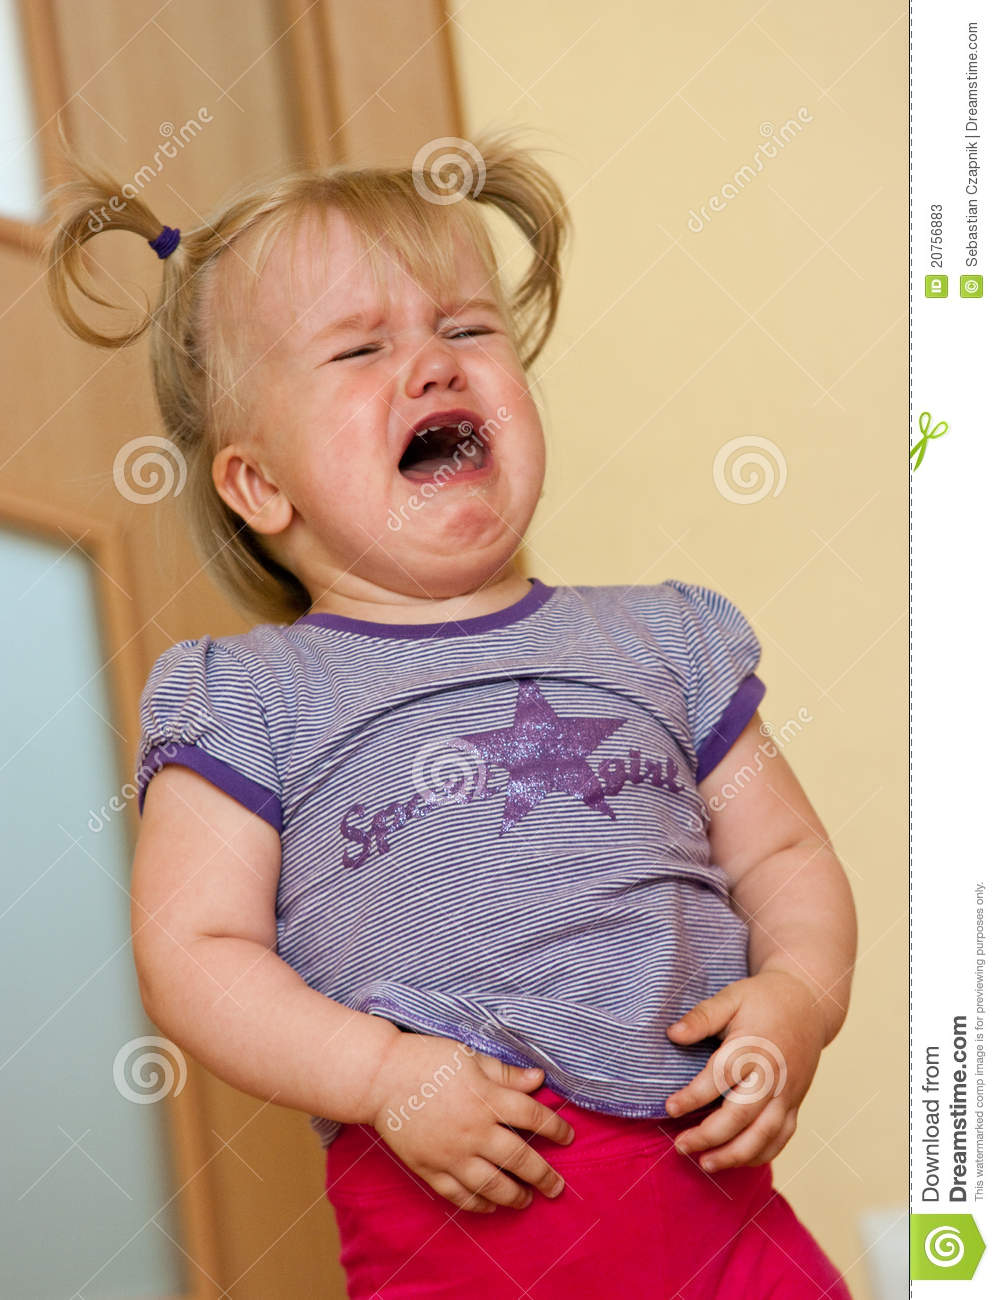 Little Girl Crying Stock Photos - Image: 20756883